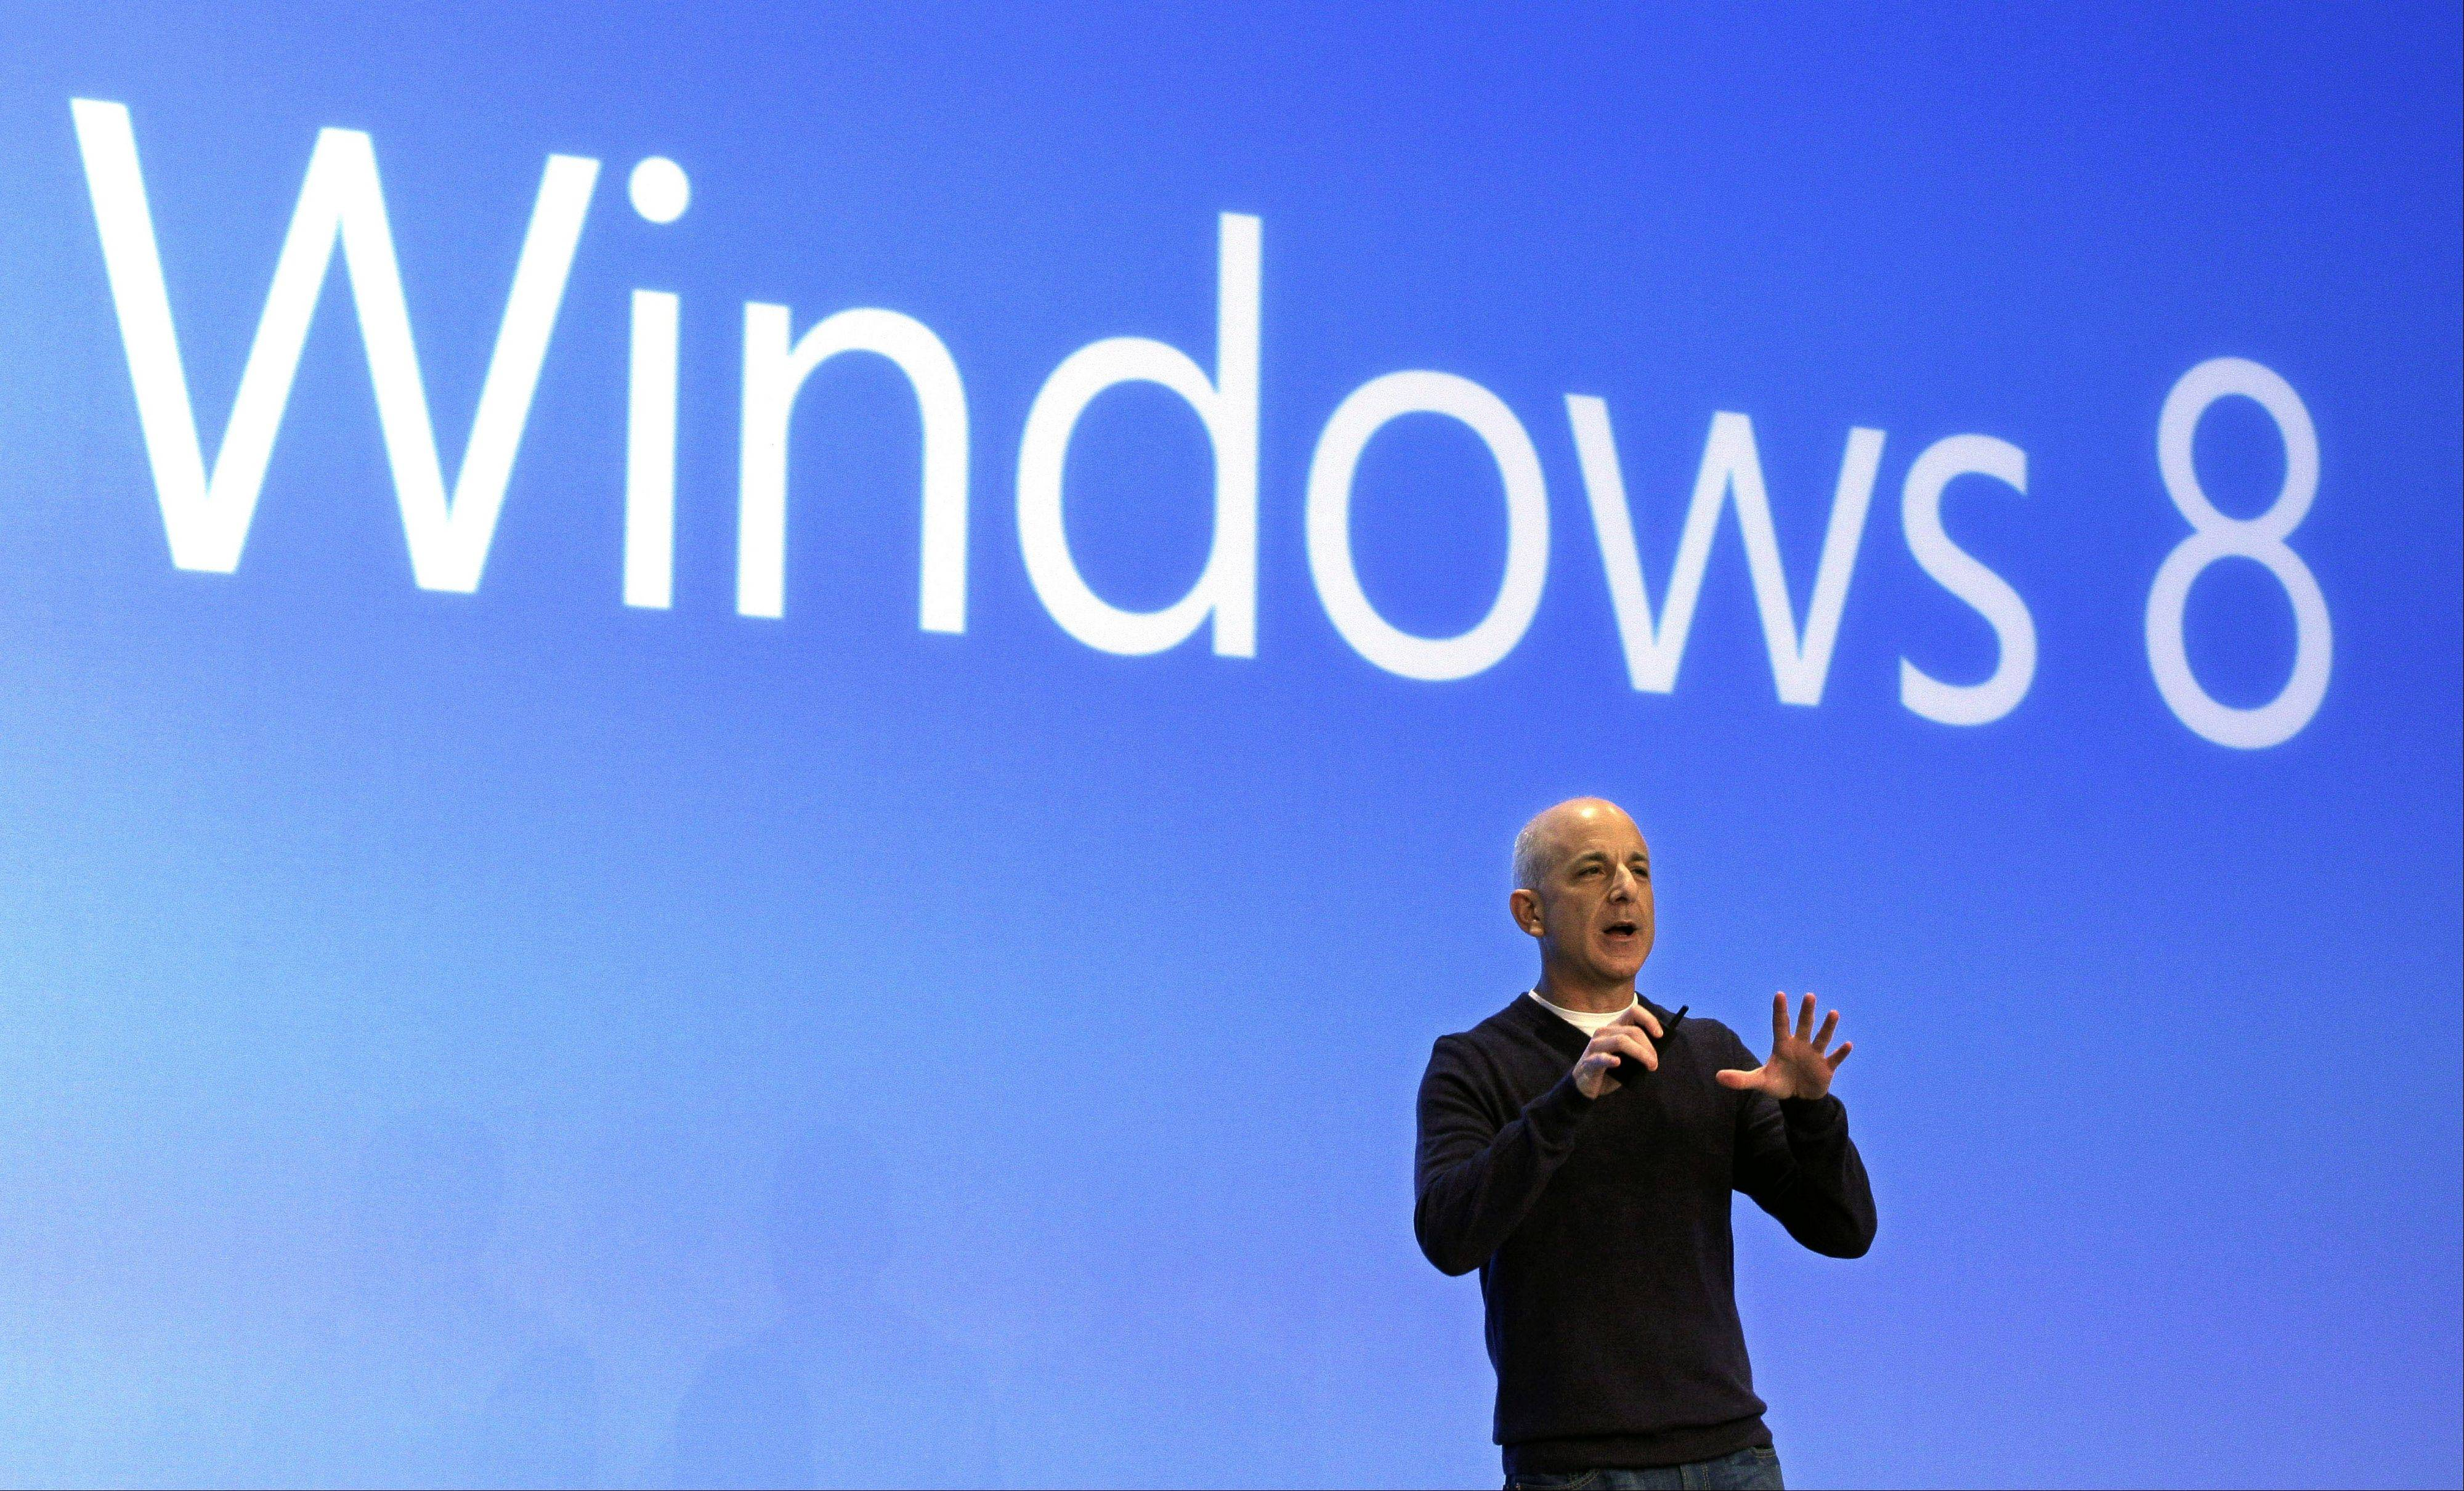 Steven Sinofsky�s departure from Microsoft comes just weeks after the company launched Windows 8, a major overhaul of the operating system that�s used on most of the world�s computers.